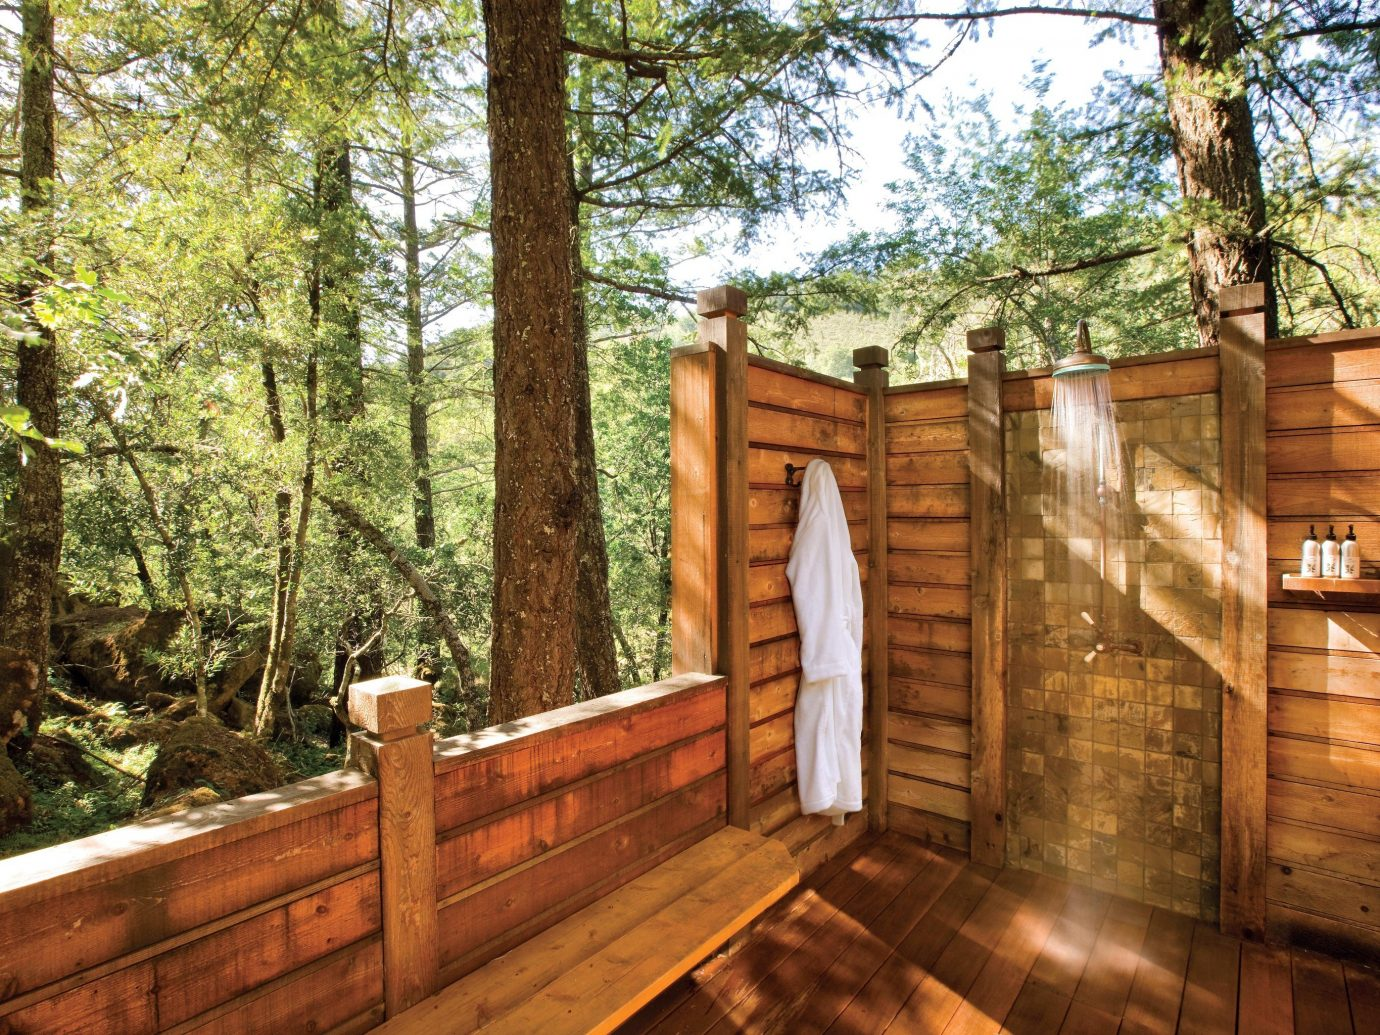 Hotels tree property wood estate wooden backyard home outdoor structure log cabin cottage real estate wooded